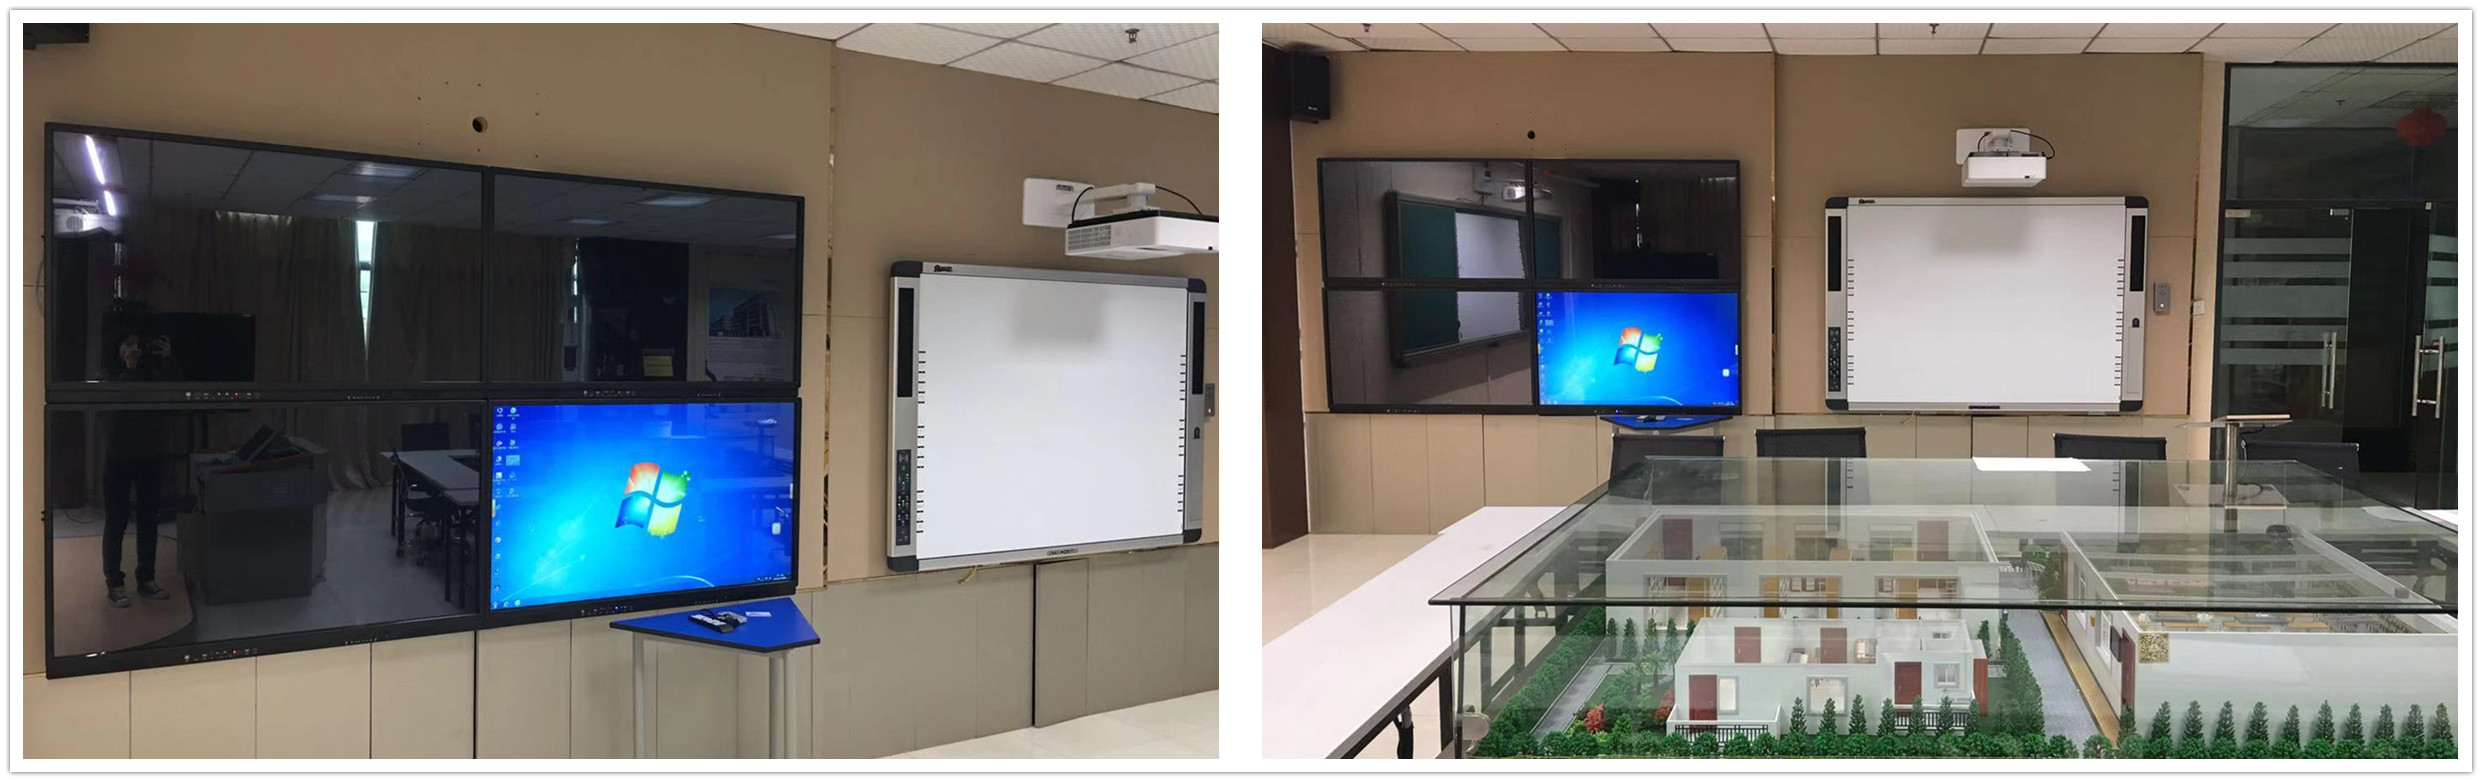 INTECH all in one interactive whiteboard